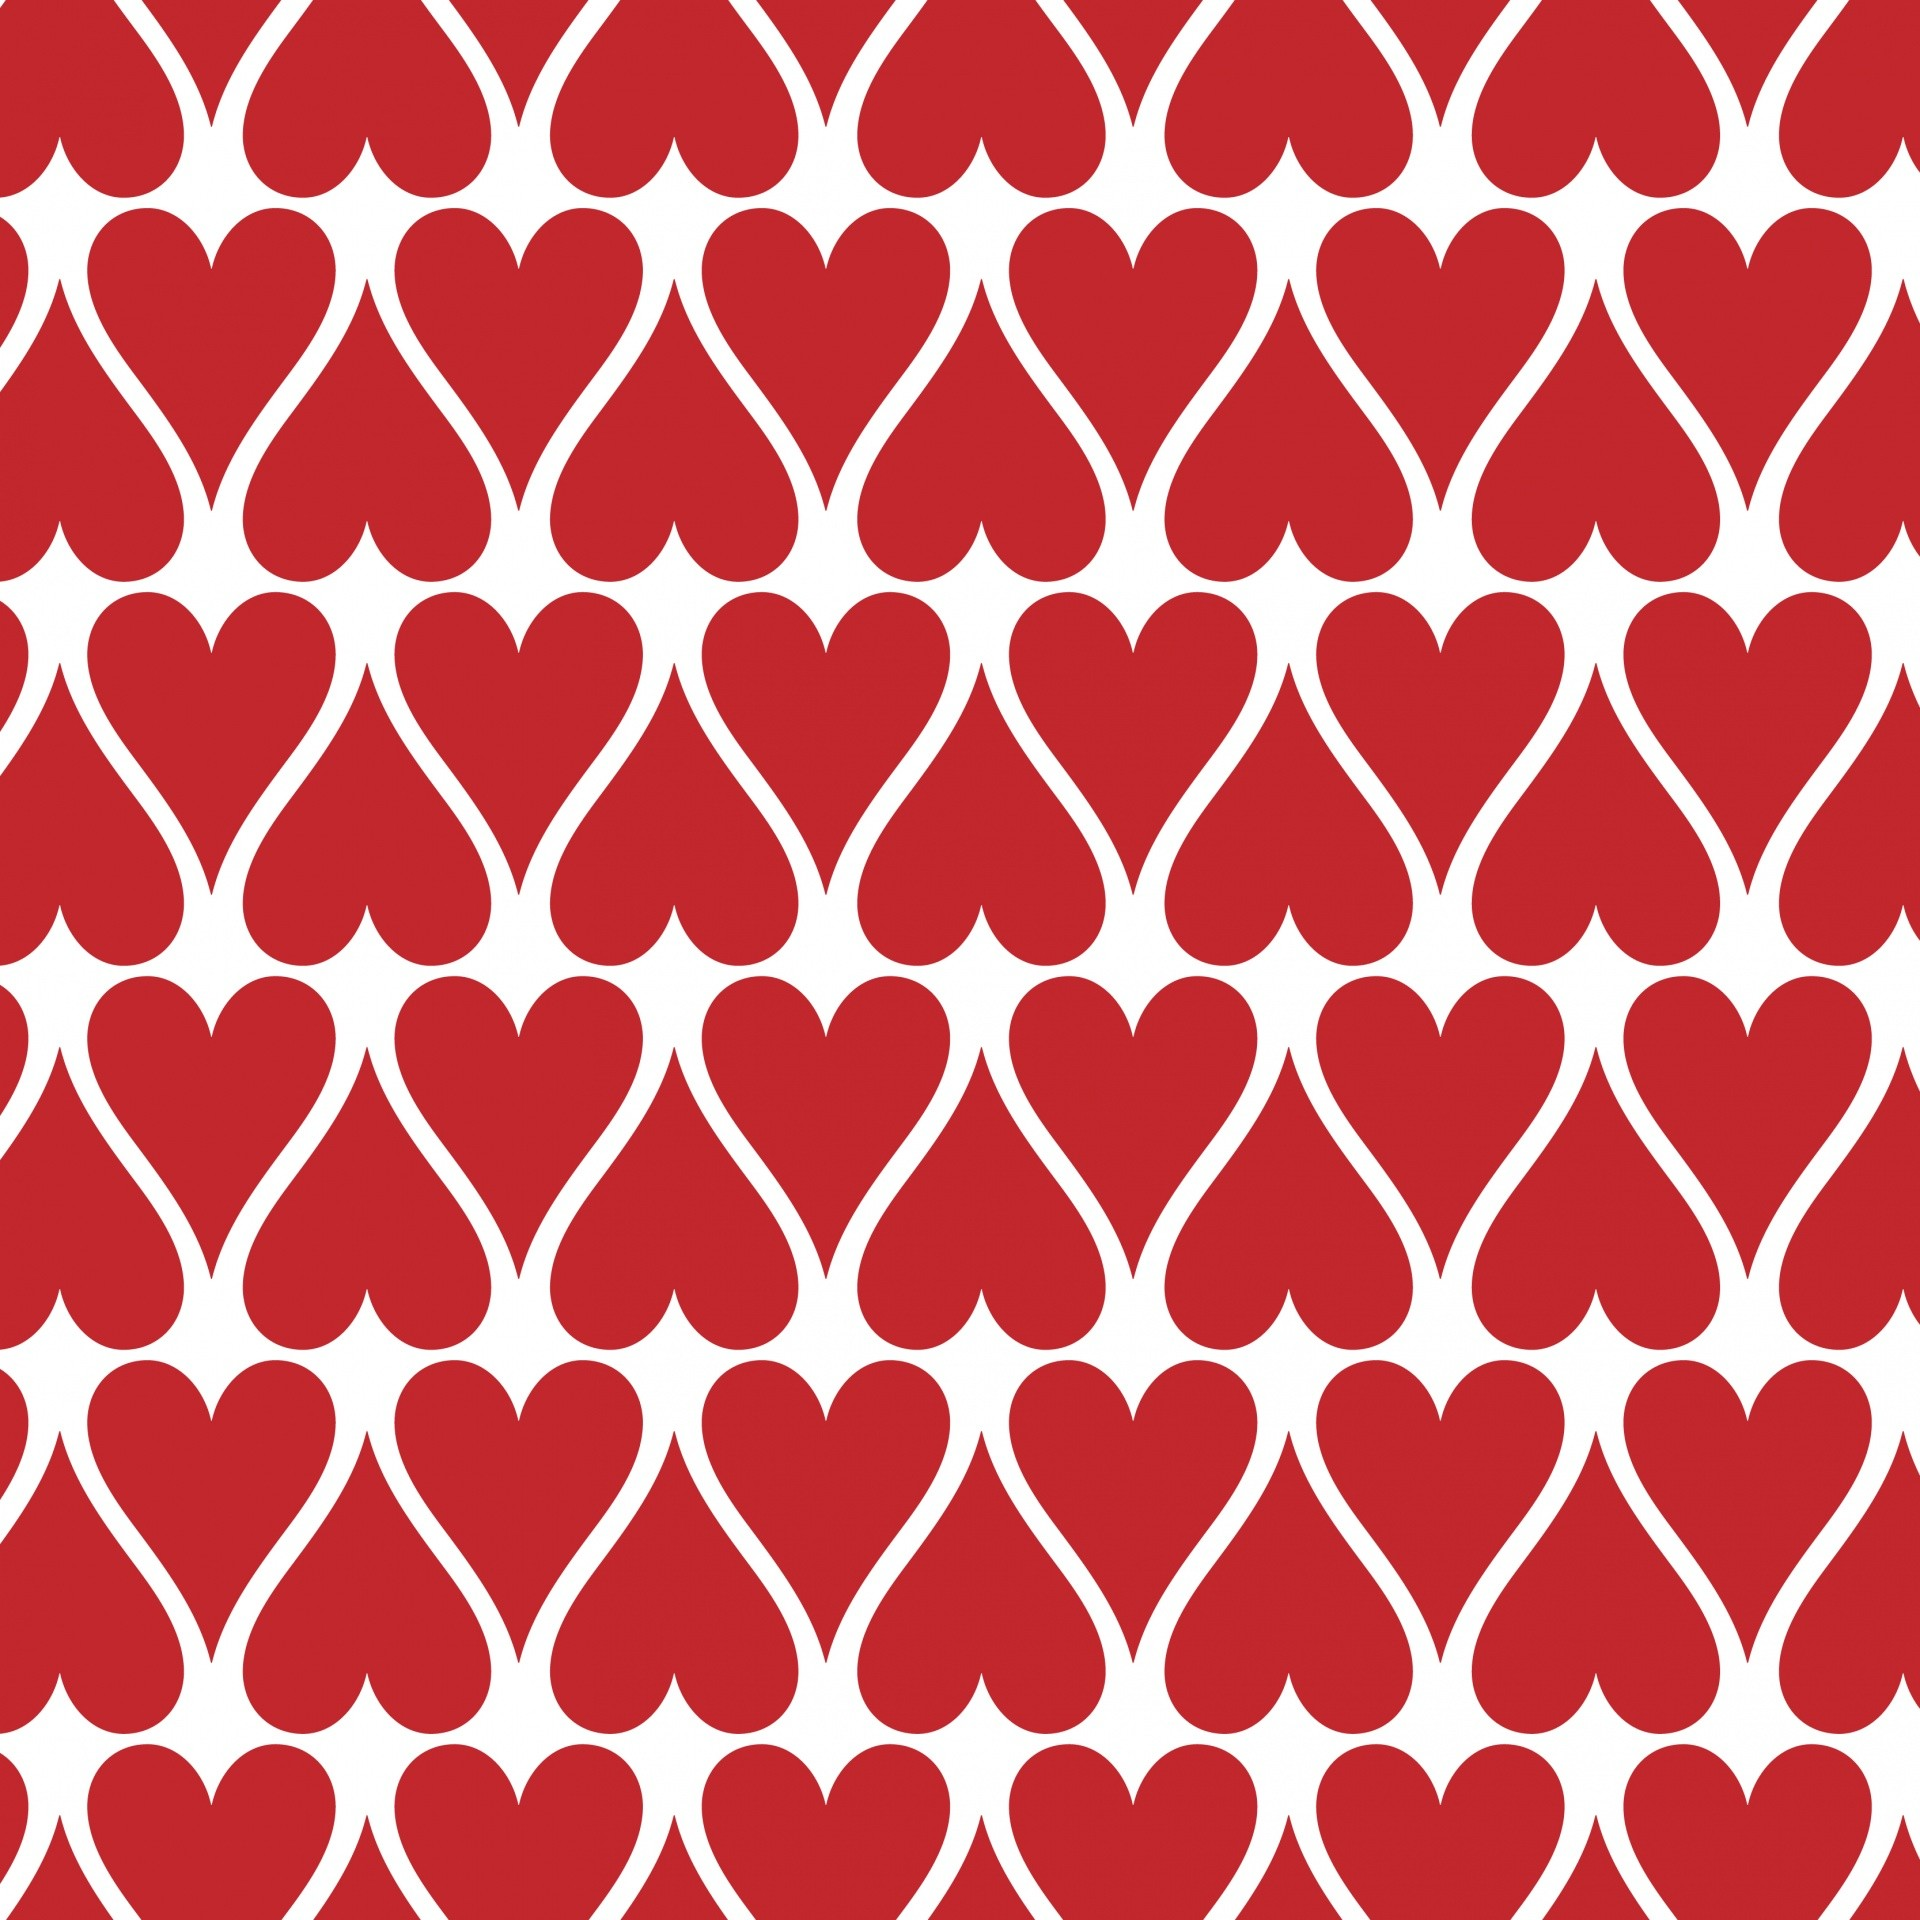 Res: 1920x1920, Red Hearts Wallpaper Background